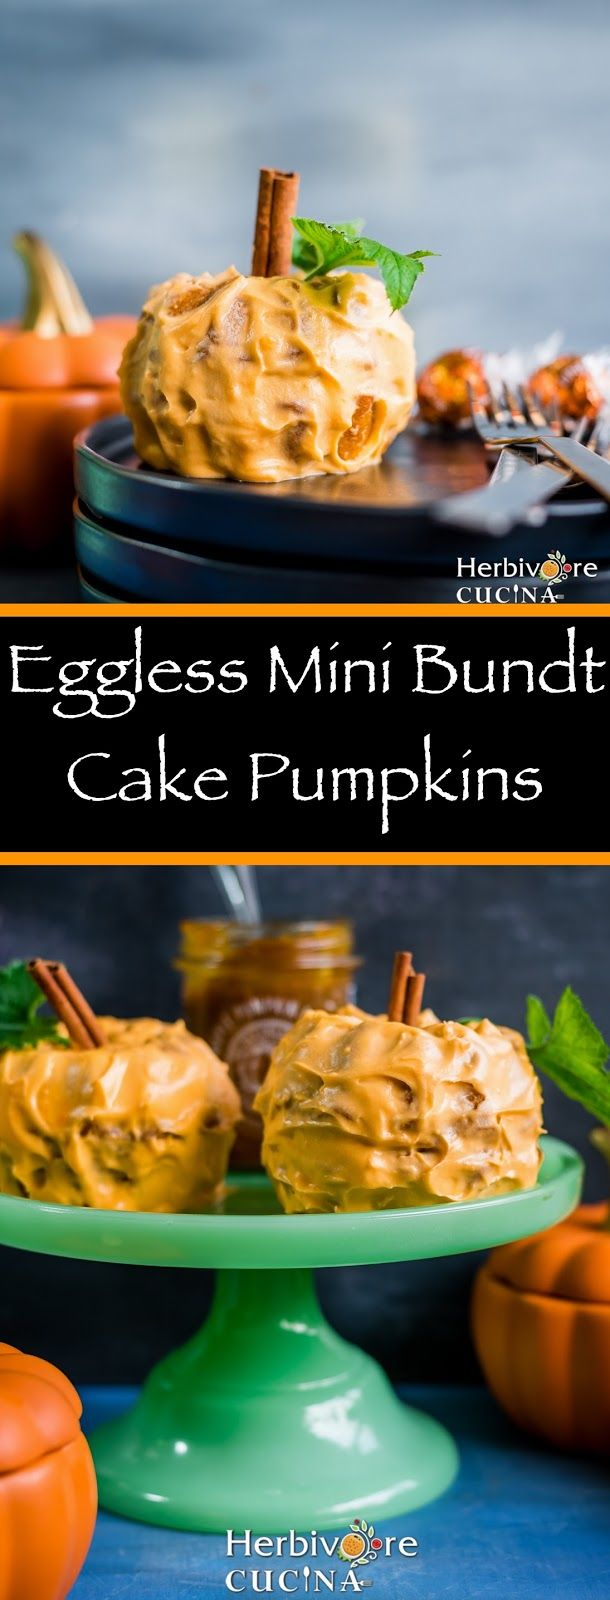 Herbivore Cucina: Eggless Mini Bundt Cake Pumpkins...Planning a Fall party? You need these mini bundt cakes bursting with the flavor of PUMPKINS!!   #ad #worldmarket @worldmarket #sponsored #fallfavorites #allthingspumpkin #pumpkinspiceandeverythingnice #halloween #holidayspecial #worldmarkettribe #tasteoffall #egglessbaking